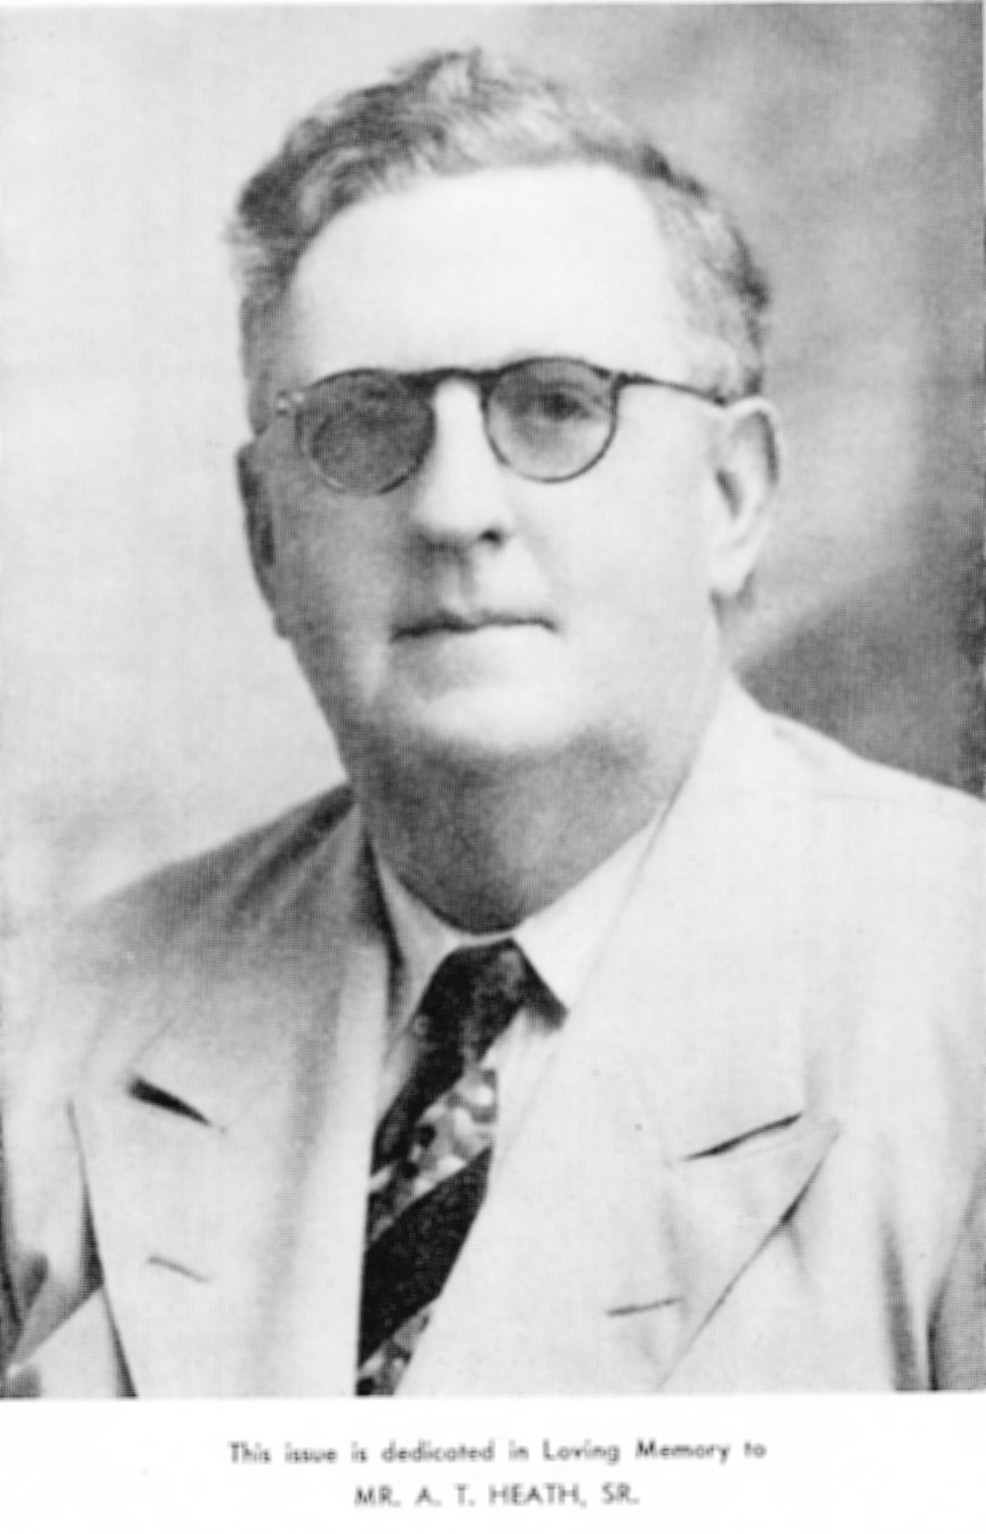 A.T. HEATH SR.